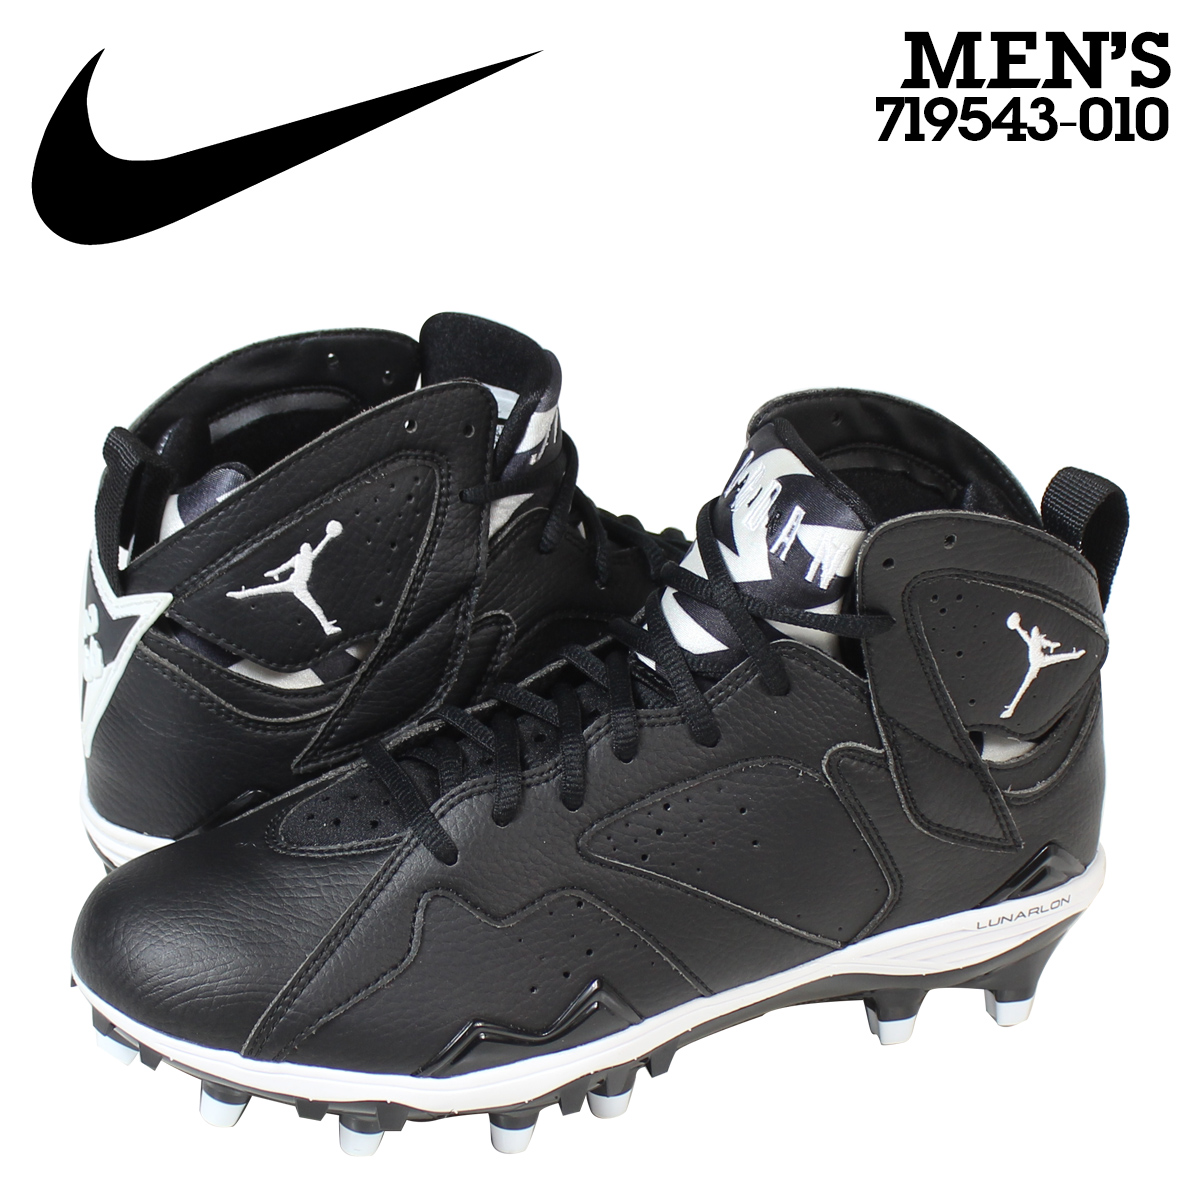 90a9a64693b ...  Black Baseball Cleat Men s Us Nike NIKE Air Jordan spike soccer football  shoes JORDAN RETRO 7 TD Air Jordan retro 719543 ...